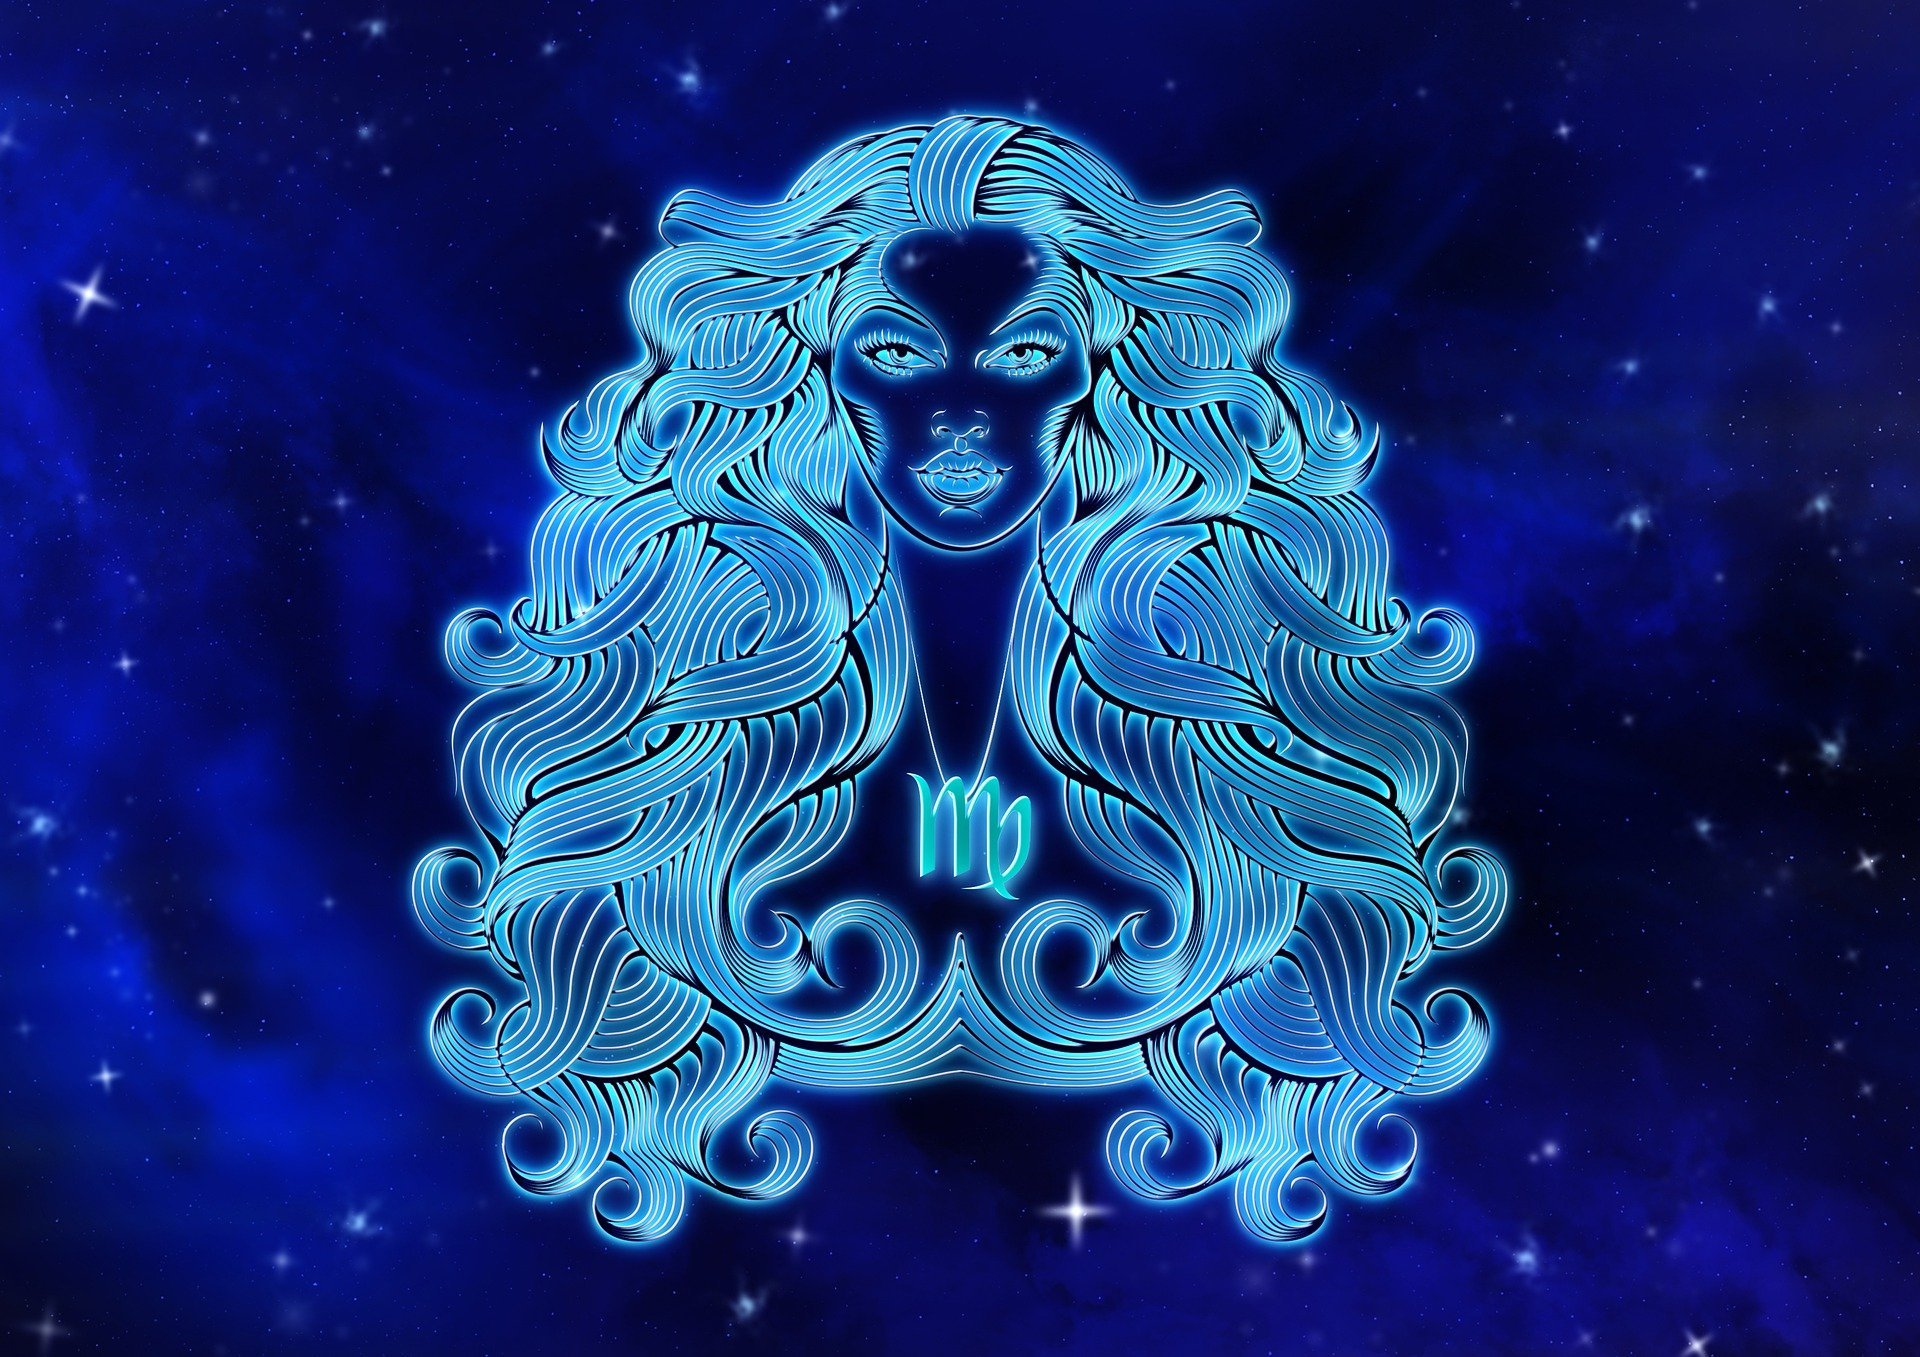 Pictured - A depiction of a Virgo star sign   Source: Pixabay